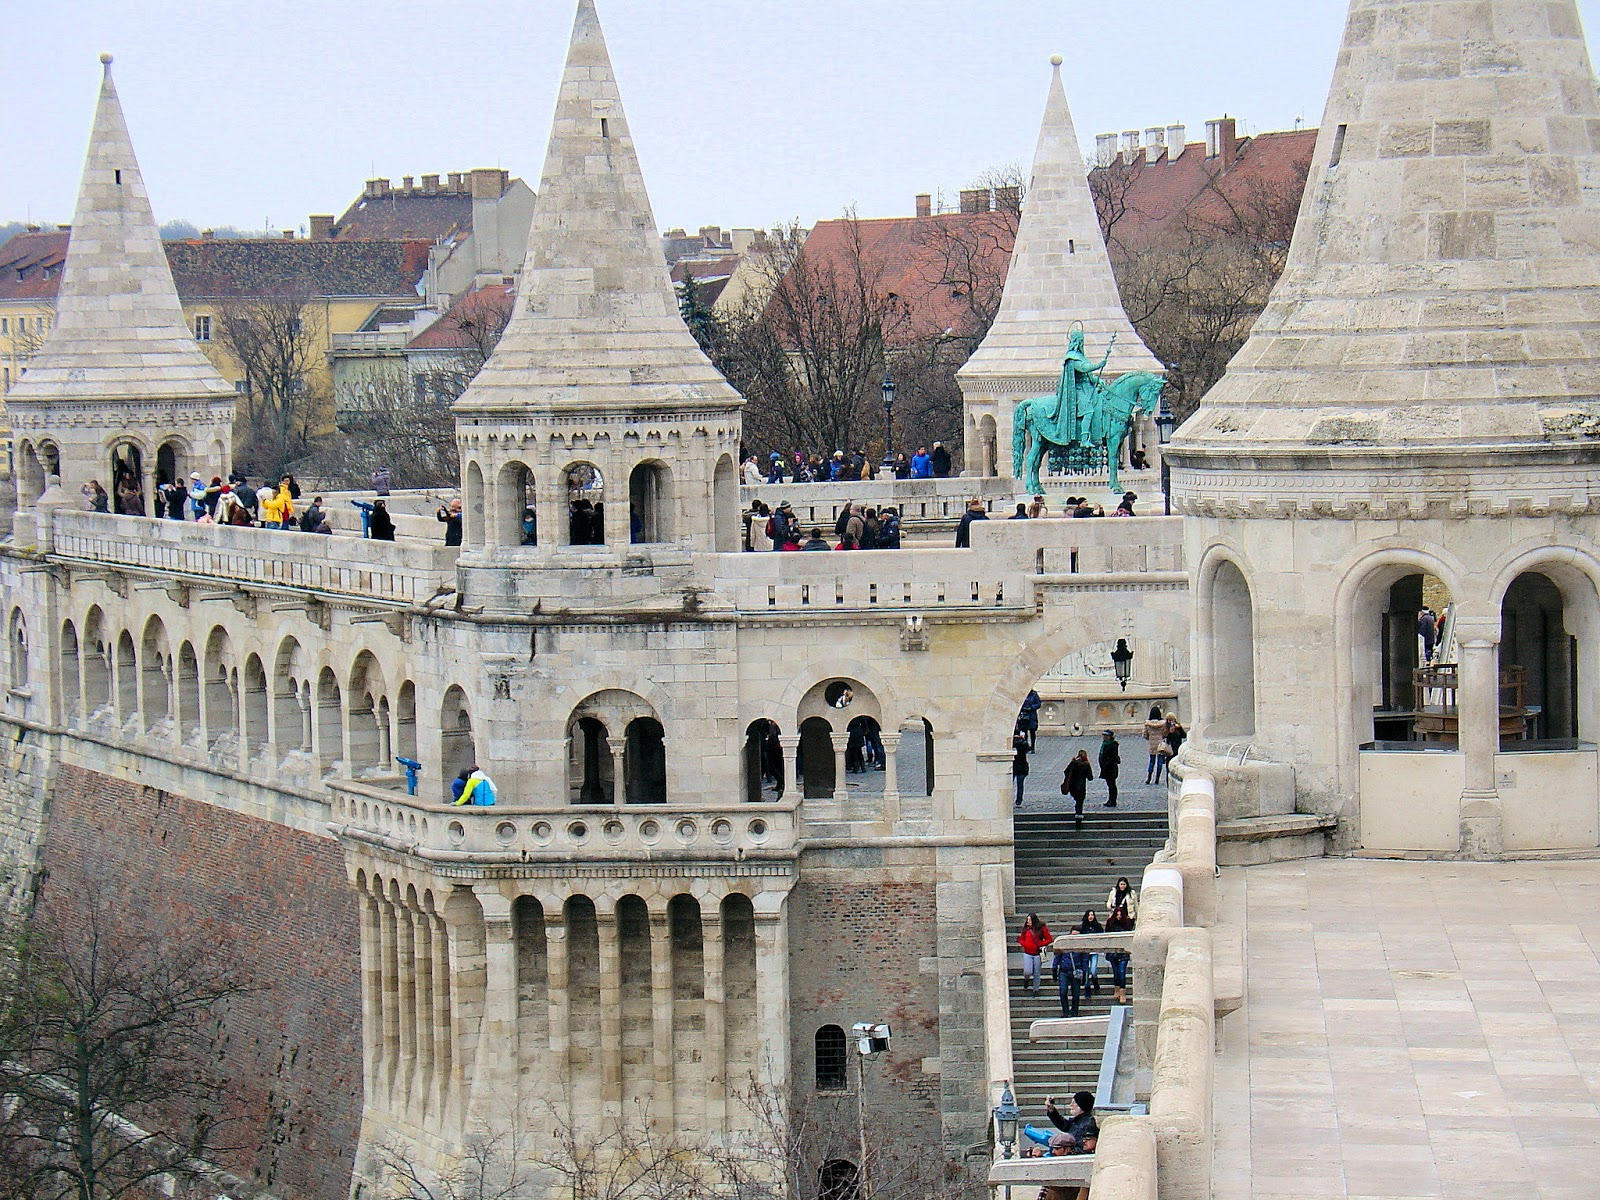 The rear view of Fisherman's Bastion reveals the old castle ramparts that served as the base for the fairy-tale structure. Note the statue of King Stephen (István).